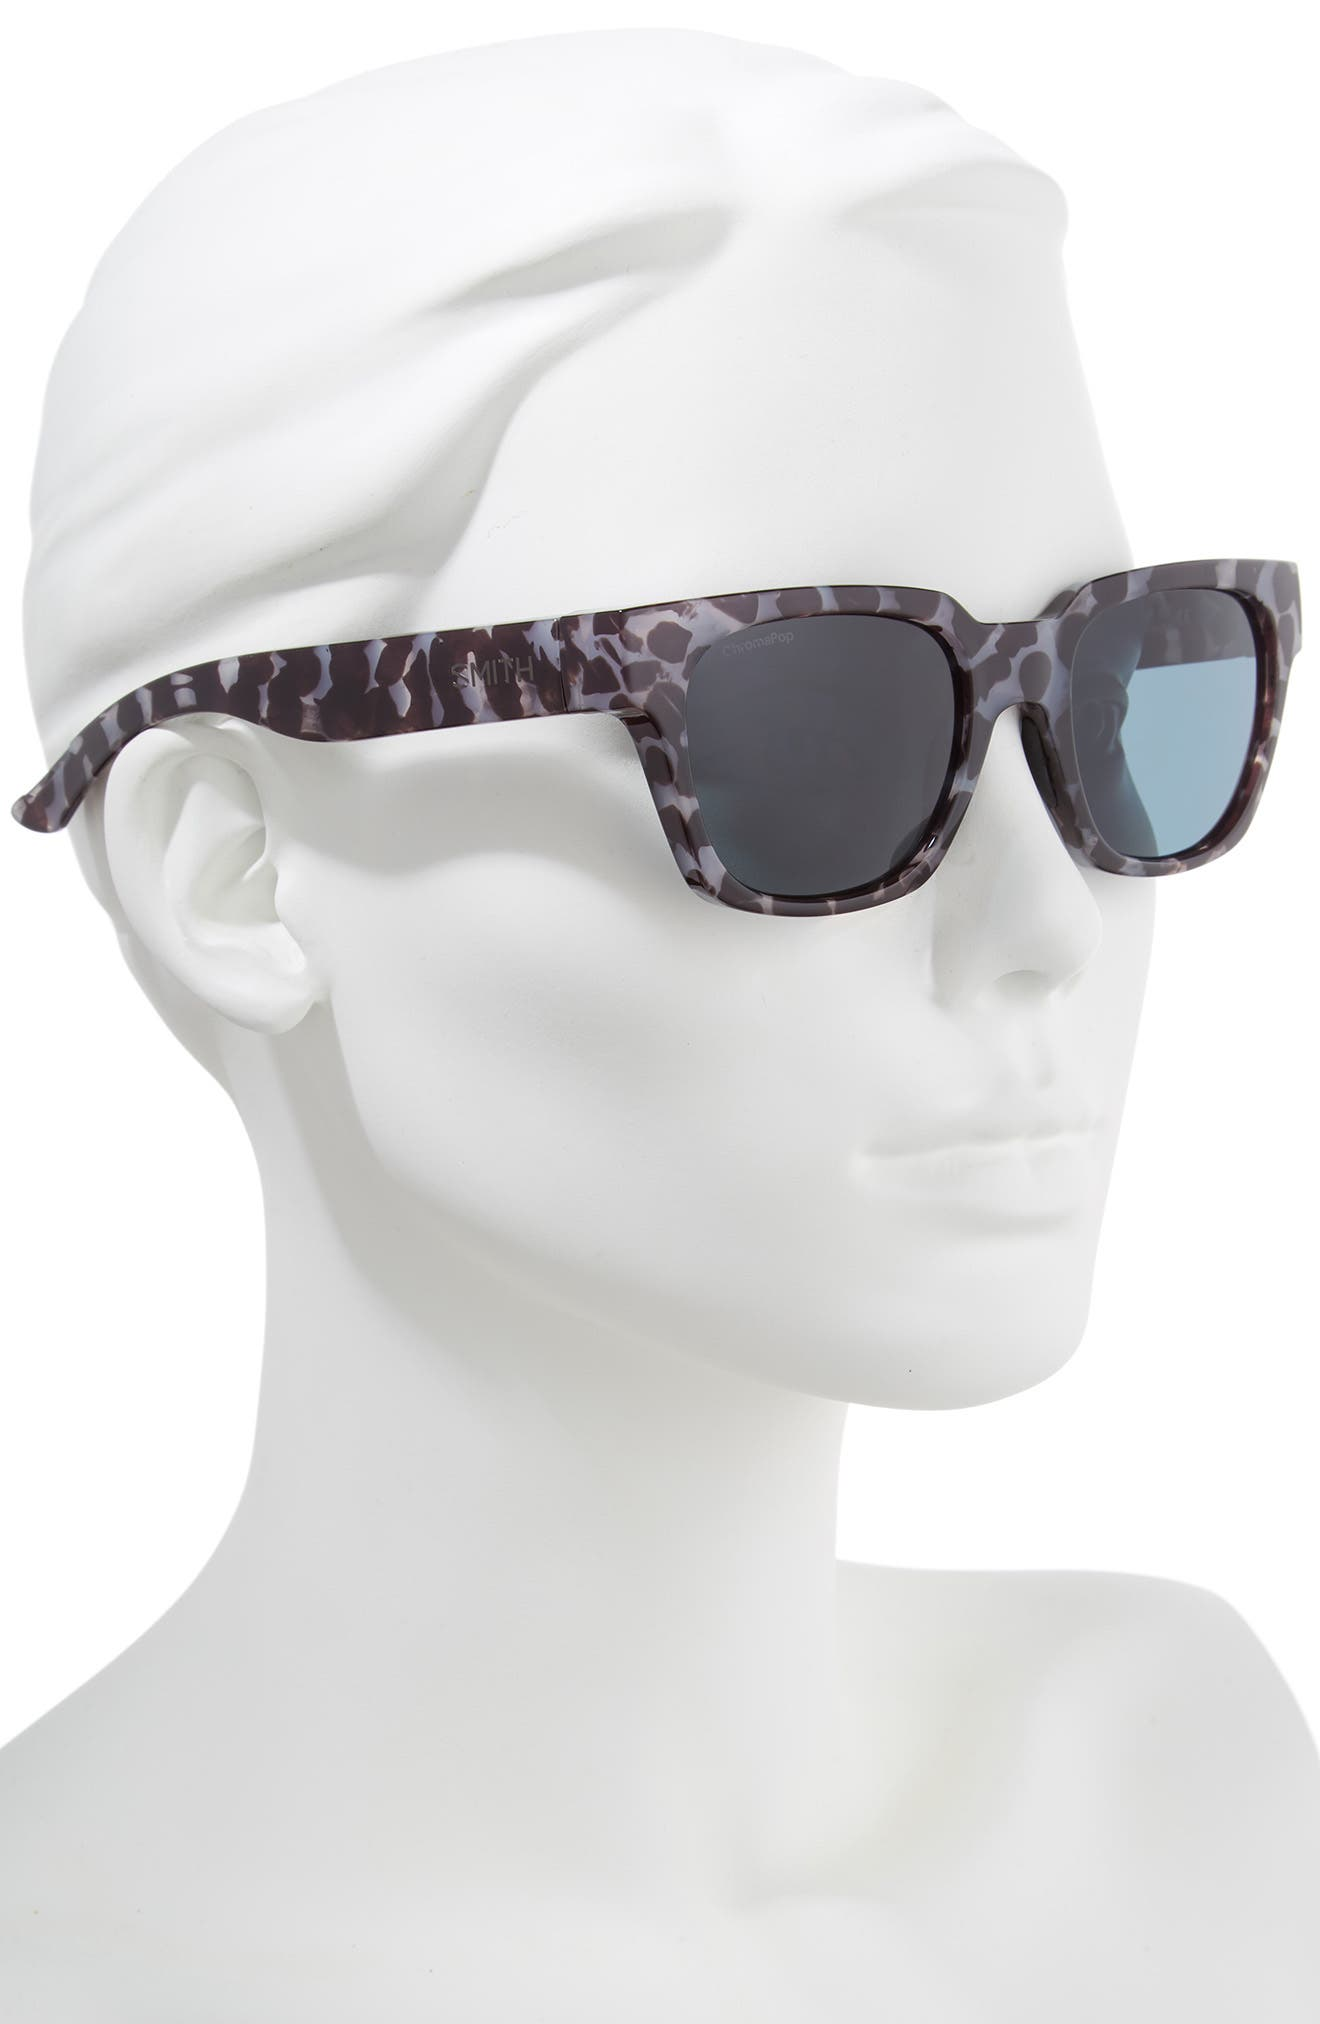 'Comstock' 52mm Rectangular Sunglasses,                             Alternate thumbnail 2, color,                             CHOCOLATE TORTOISE